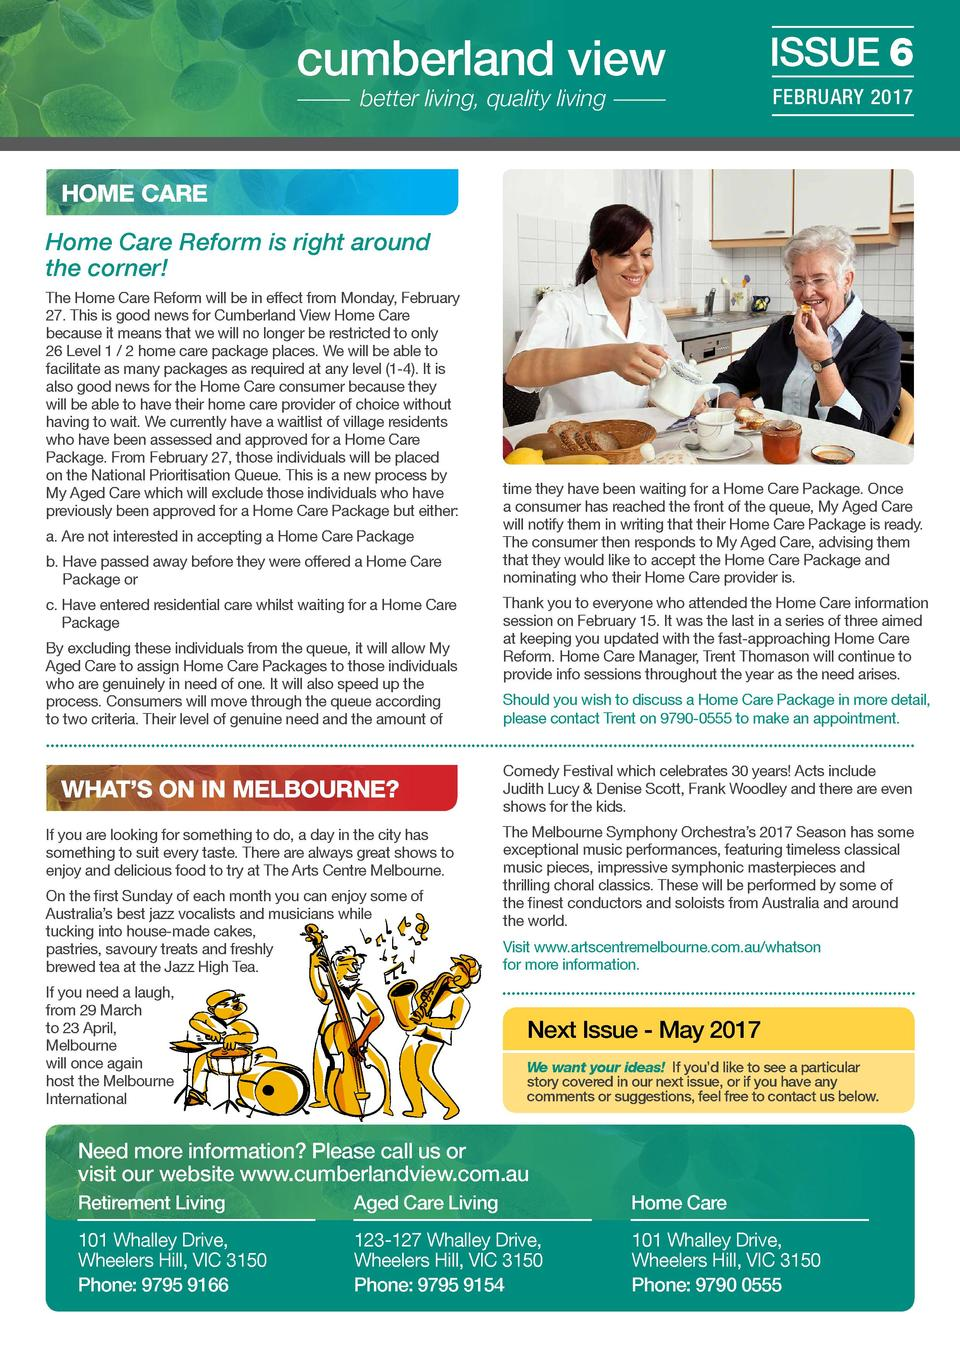 cumberland view better living, quality living  ISSUE 6 FEBRUARY 2017  HOME CARE Home Care Reform is right around the corne...